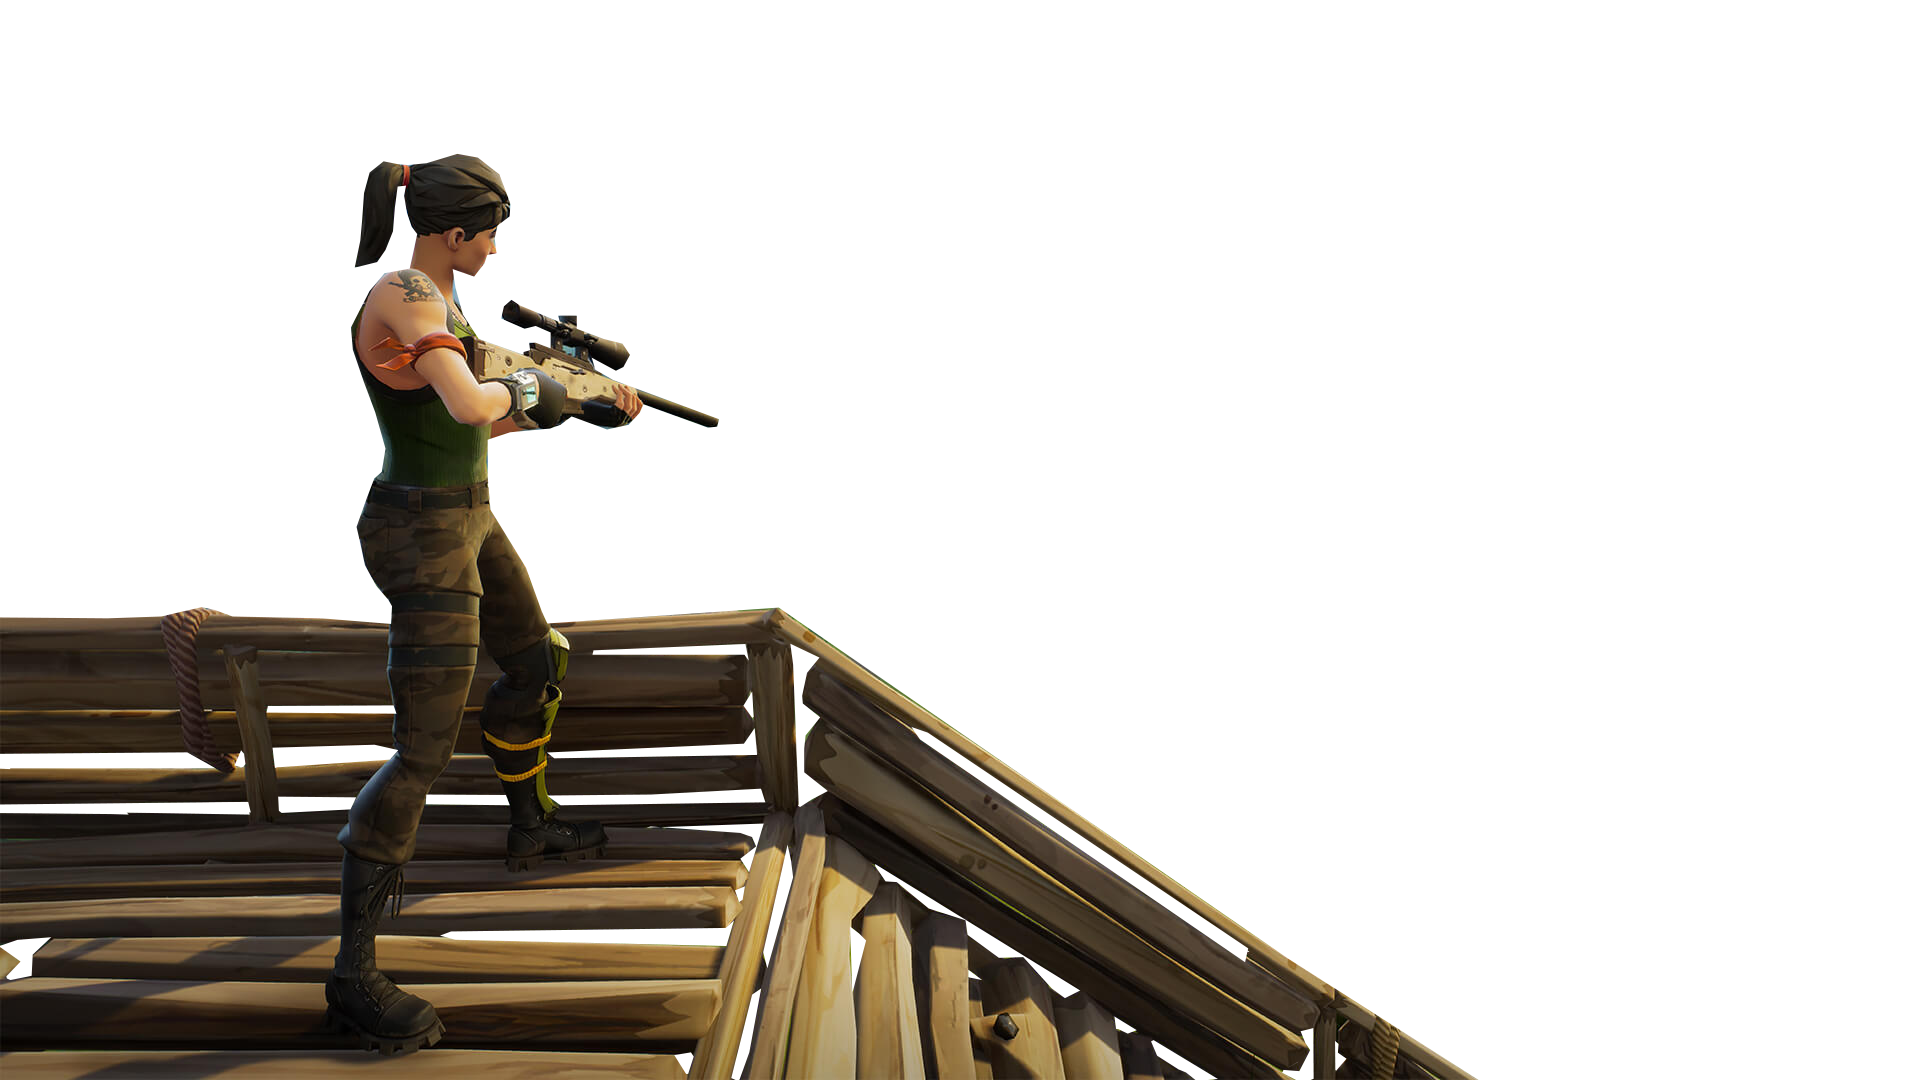 Sniper On Stairs Fortnite Thumbnail Template Png Image Purepng